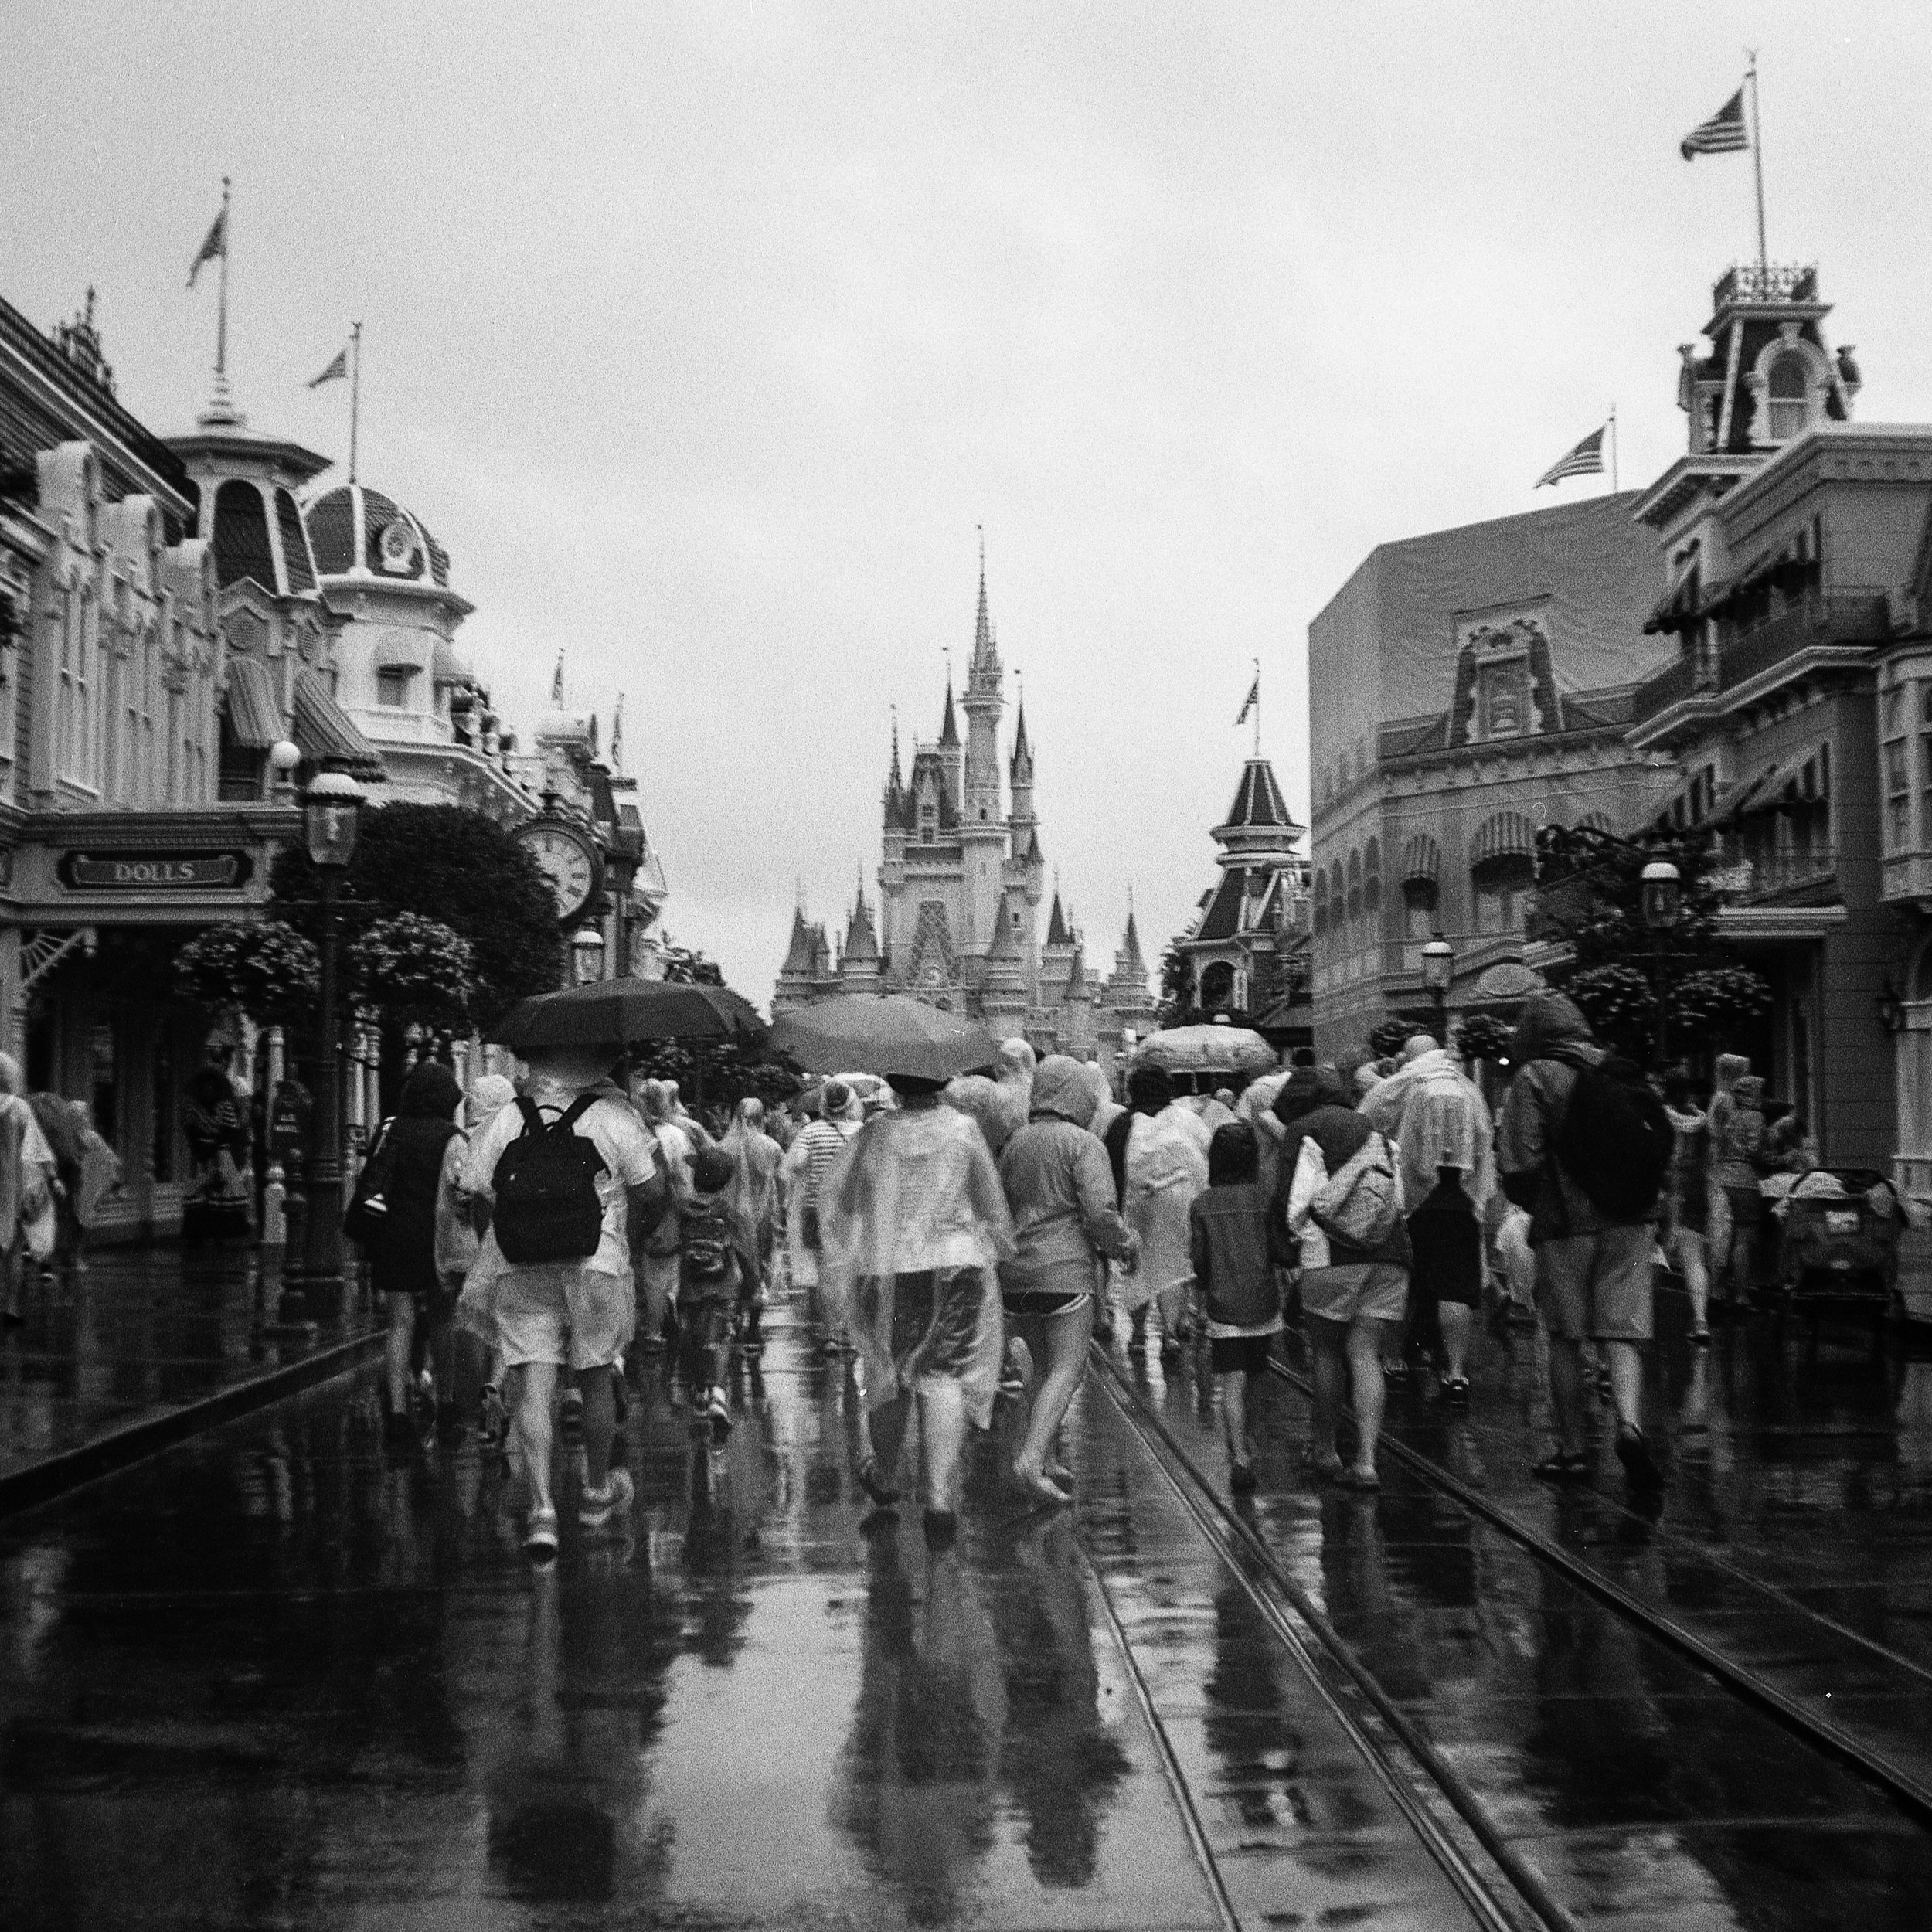 1949 Kodak Brownie Hawkeye Photo Medium Format 620 Film Zoe Kissel Photo Walt Disney World Magic Kingdom Main Street Cinderellas Castle